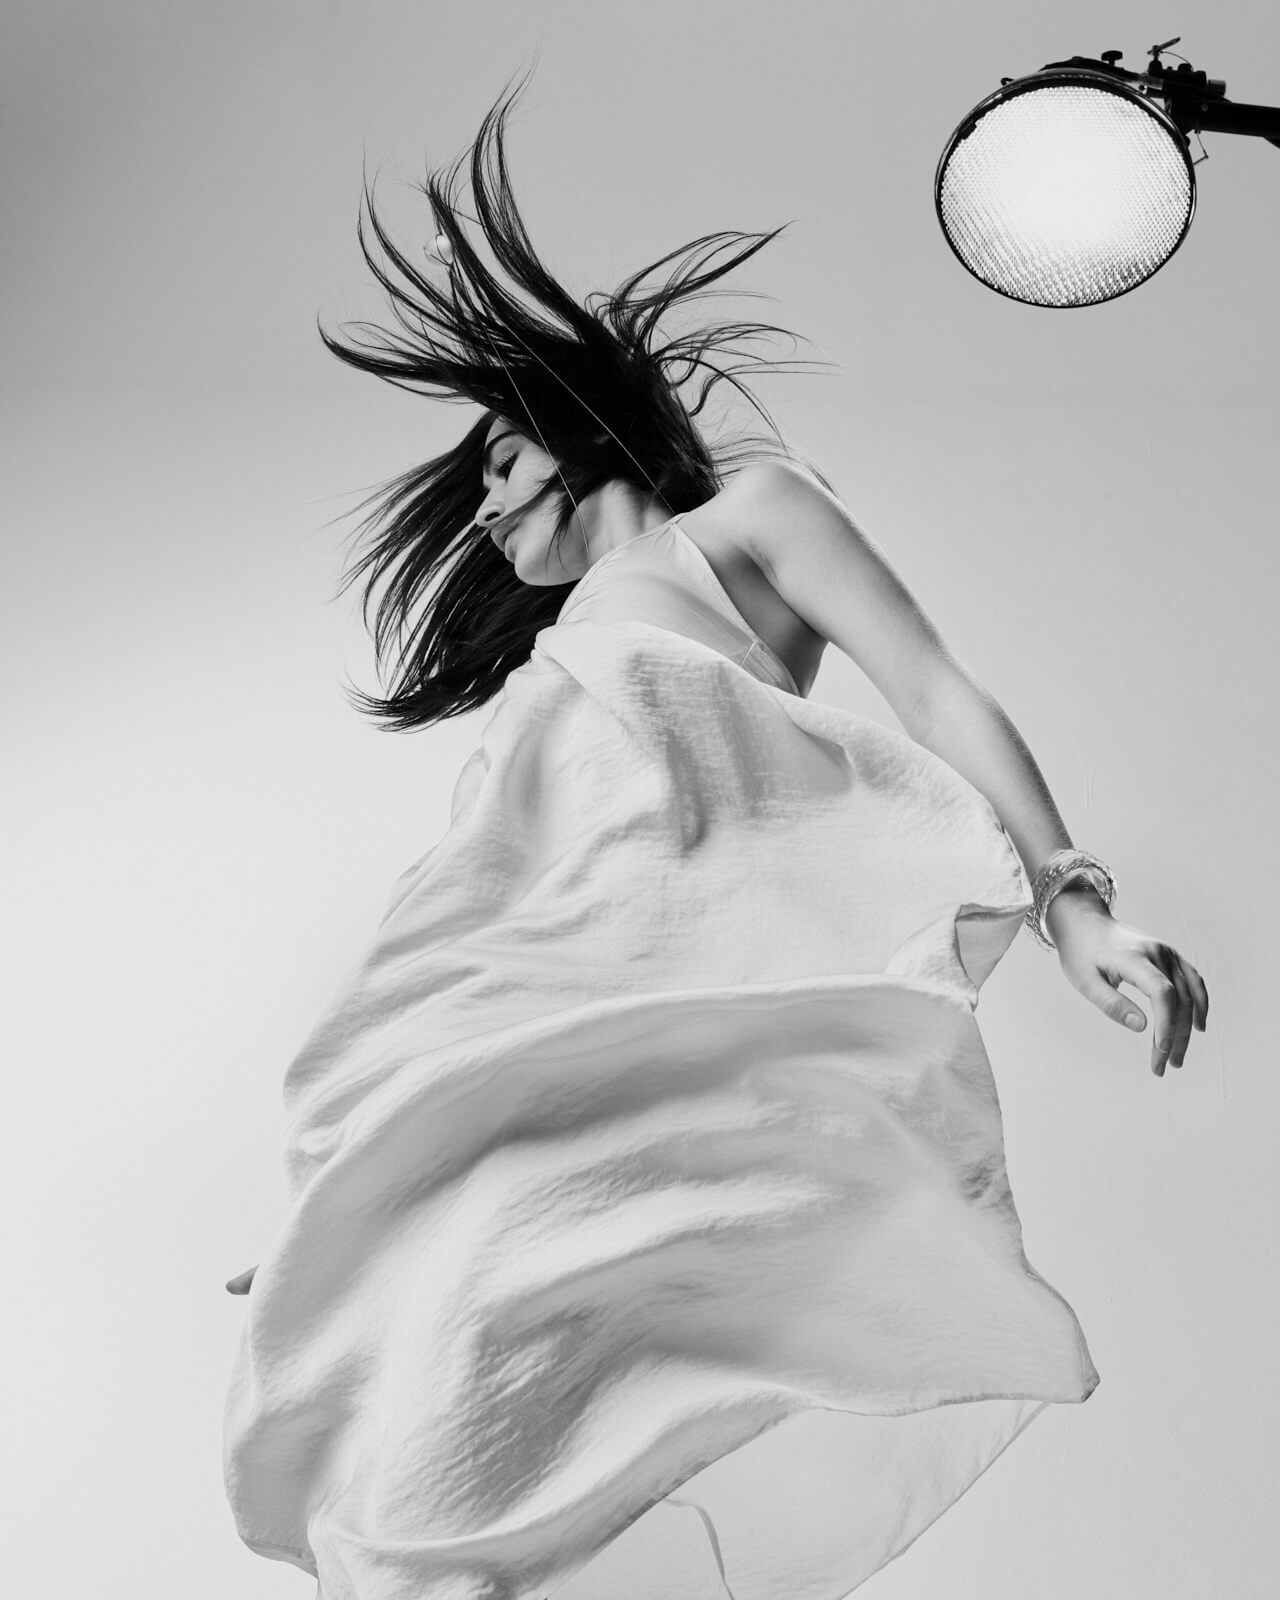 Young woman, white dress, by lifestyle photographer Tim Cole